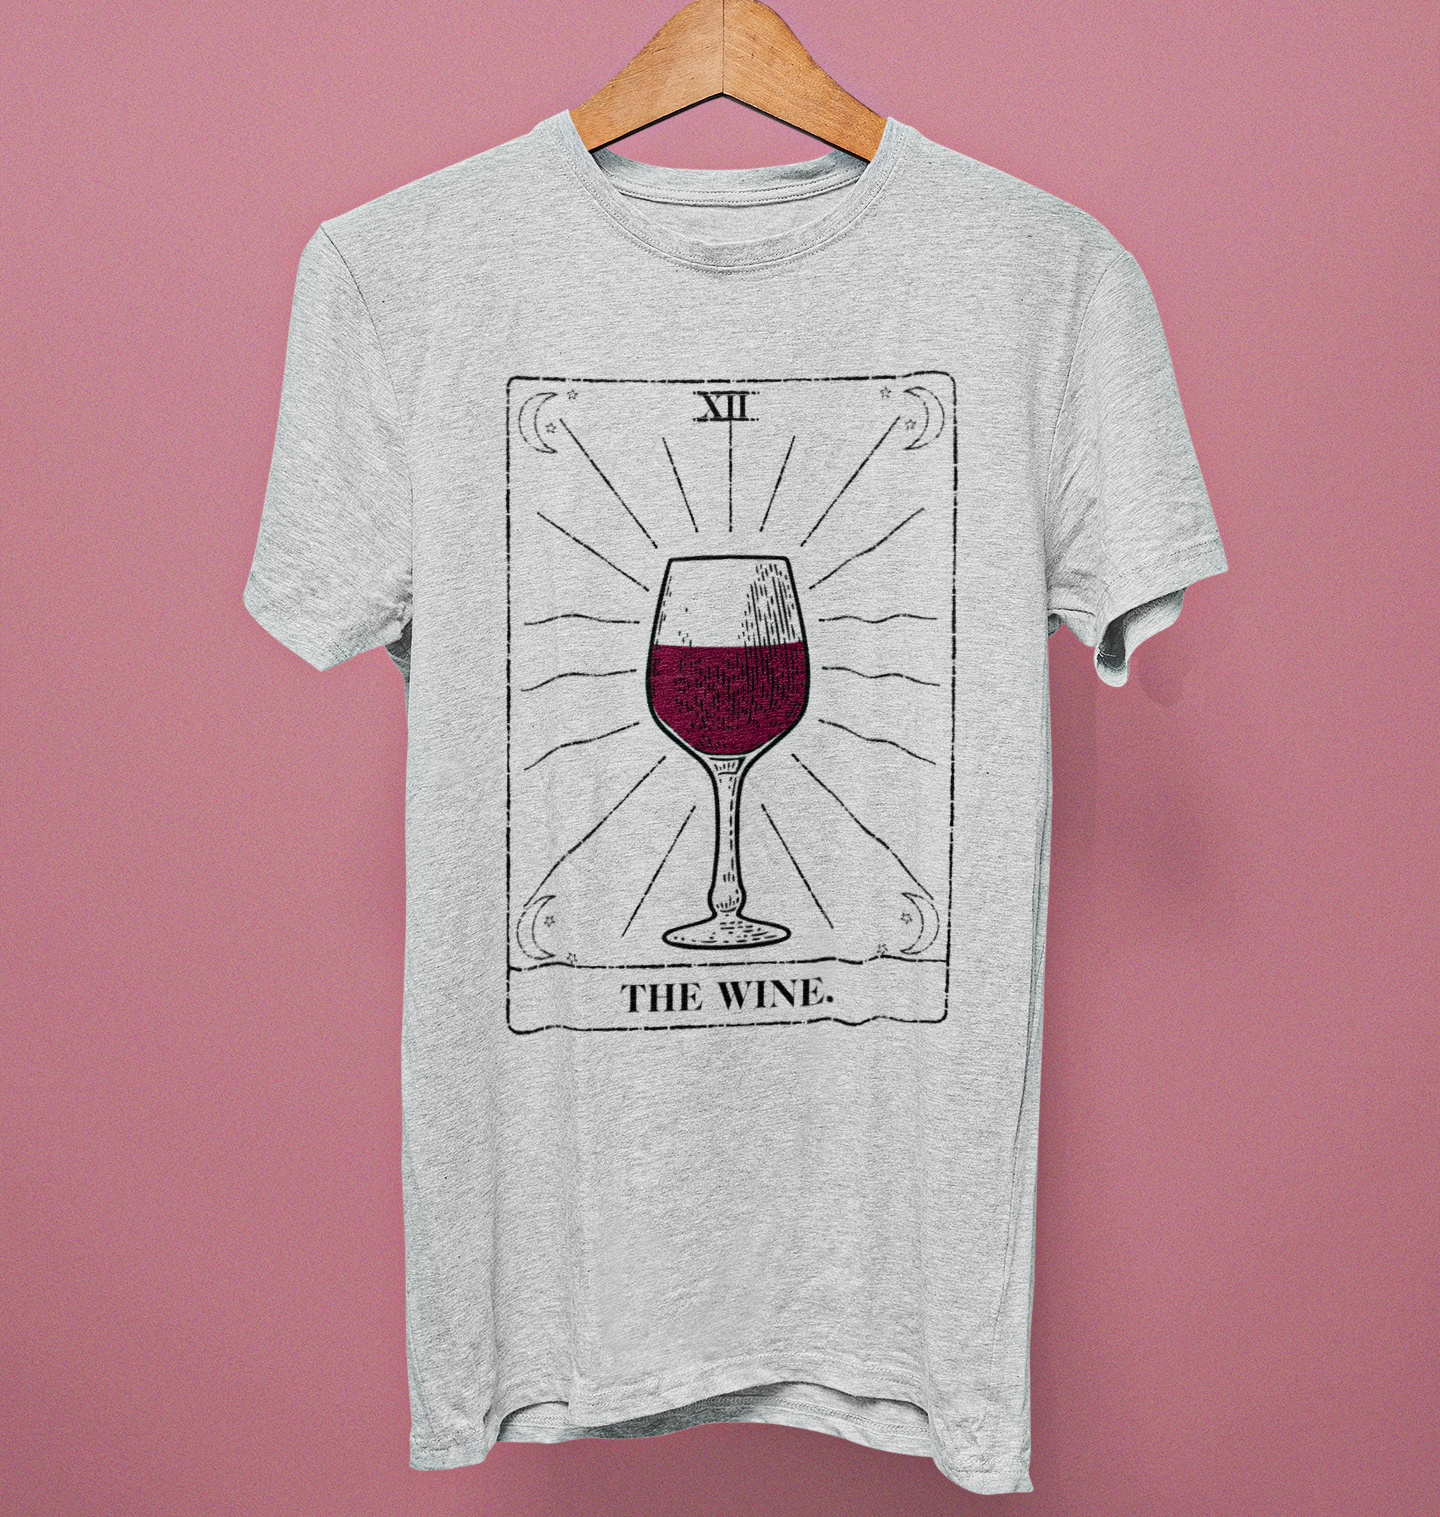 The Wine Tarot Card Shirt